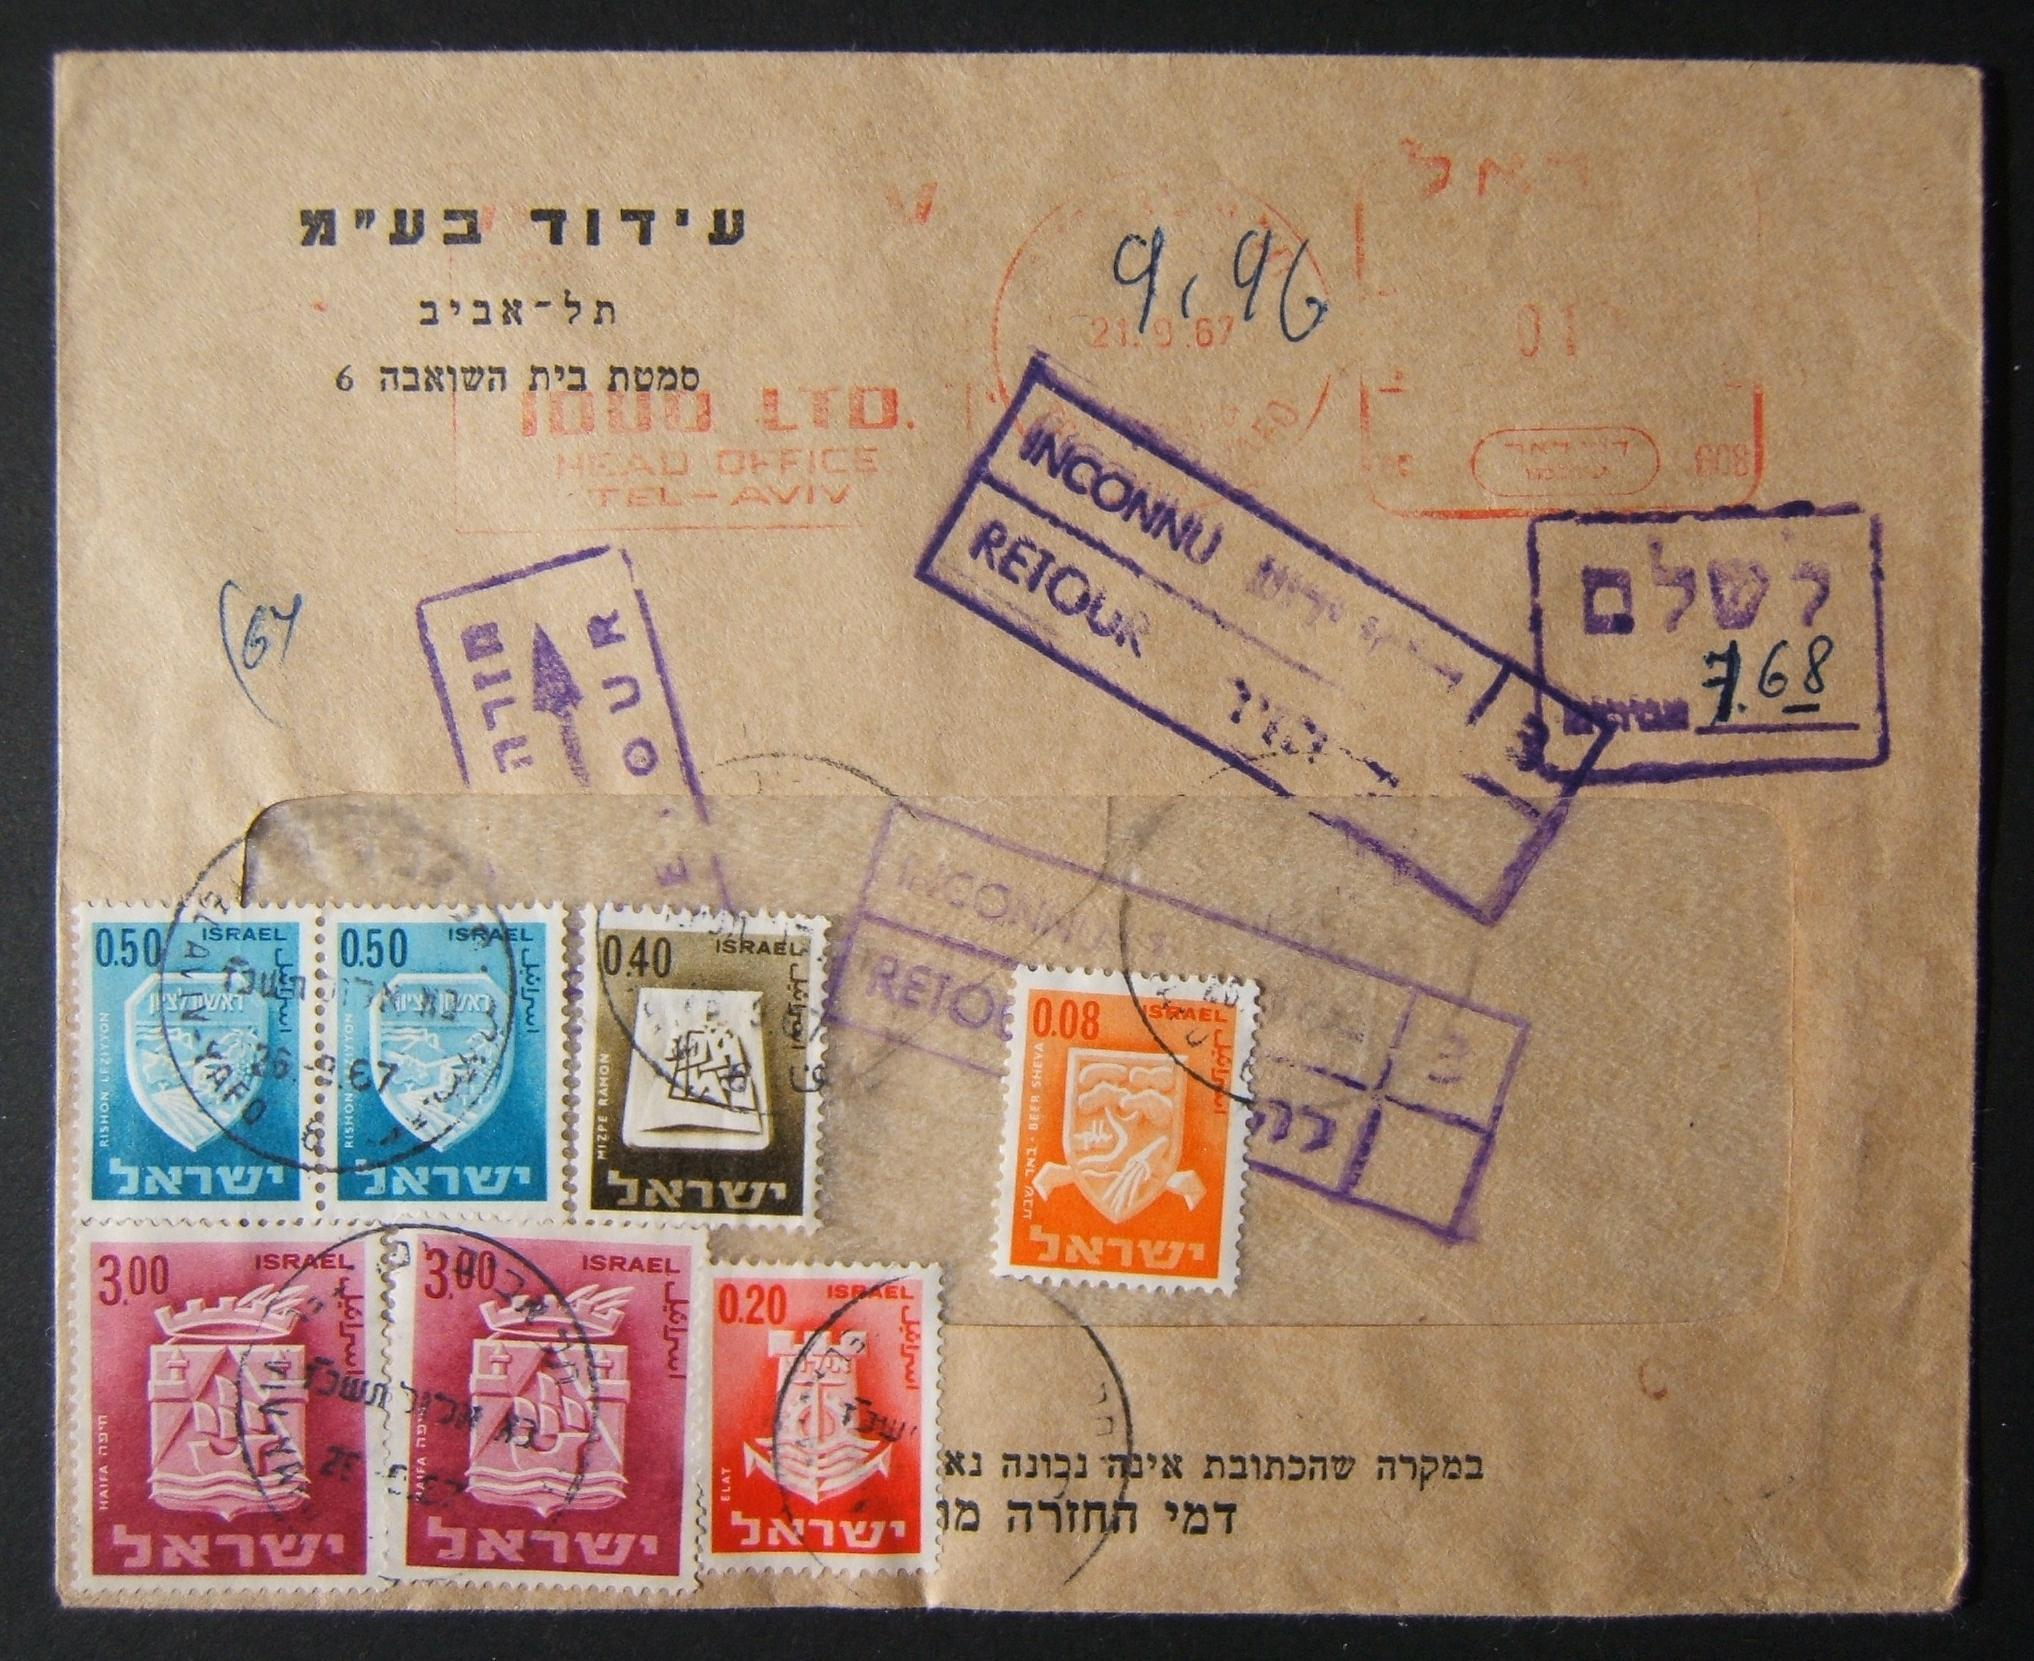 1967 domestic 'top of the pile' taxed franking: 21-9-67 pm comm. cv ex TLV franked by meter at DO-12 period 12 Ag rate, returned to sender as address unknown (cachets & manuscript)